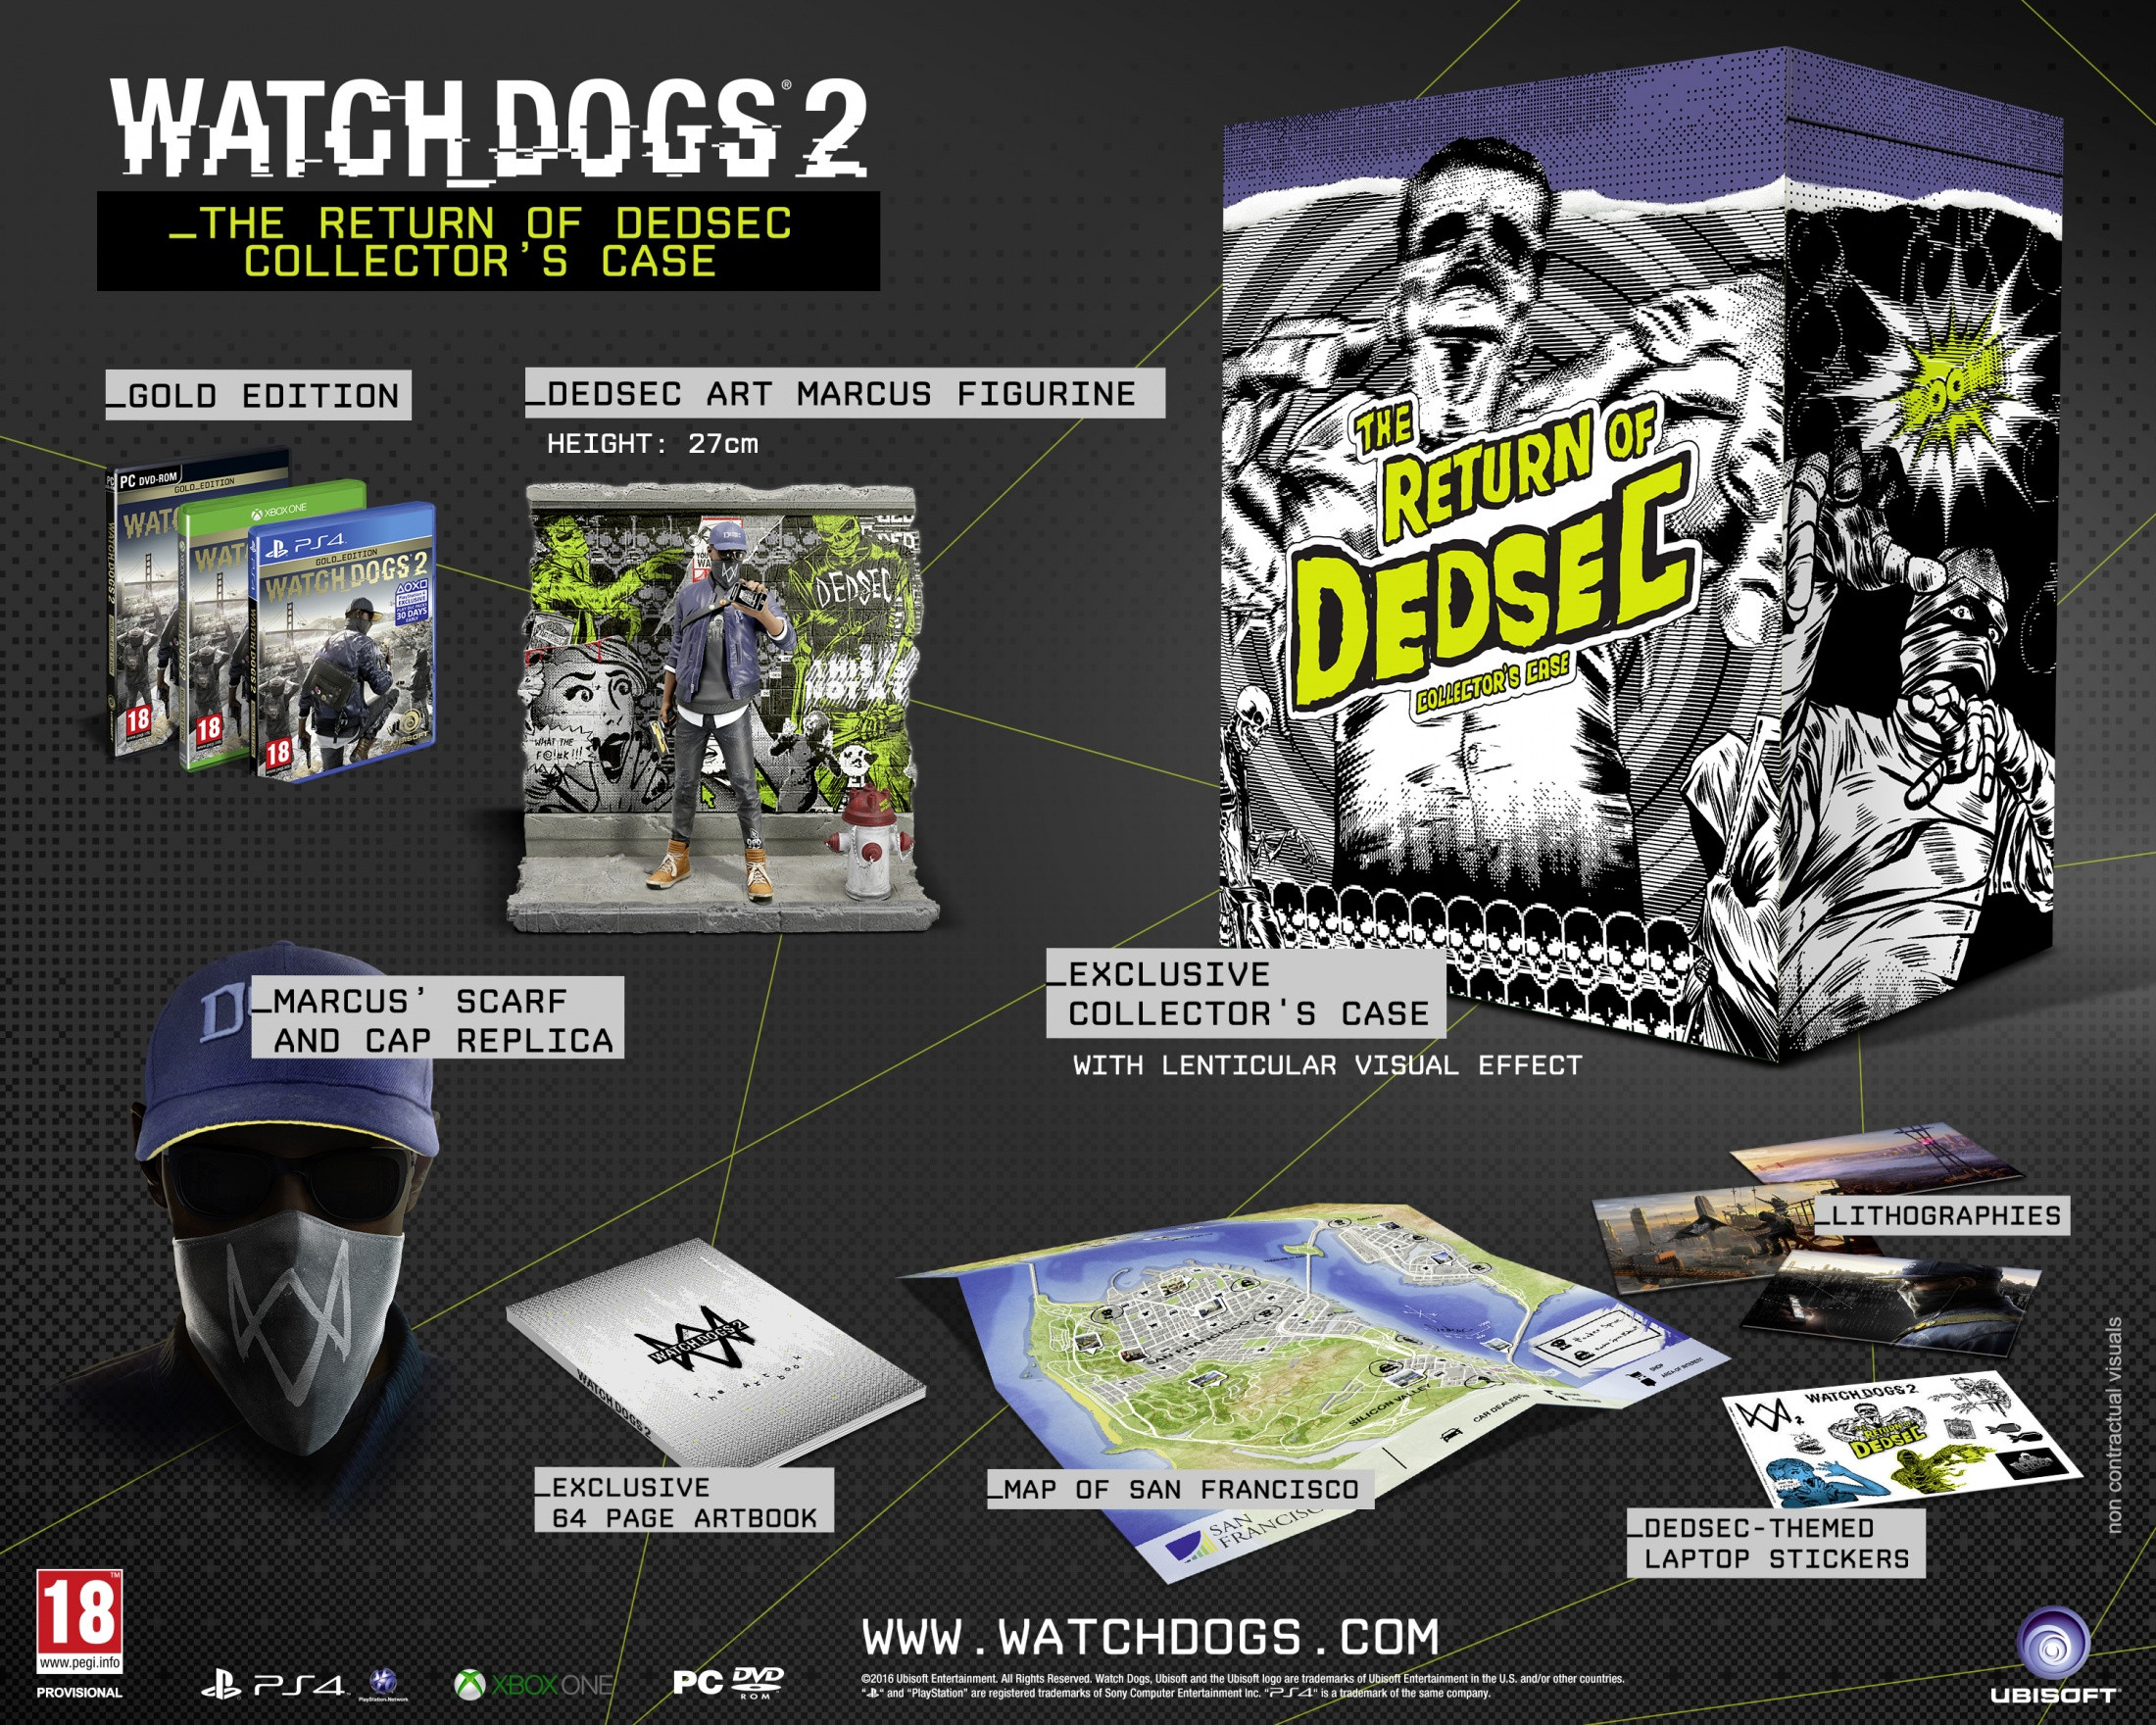 Thumbnail for Watch Dogs 2 - The Return Of Dedsec COLLECTOR'S CASE